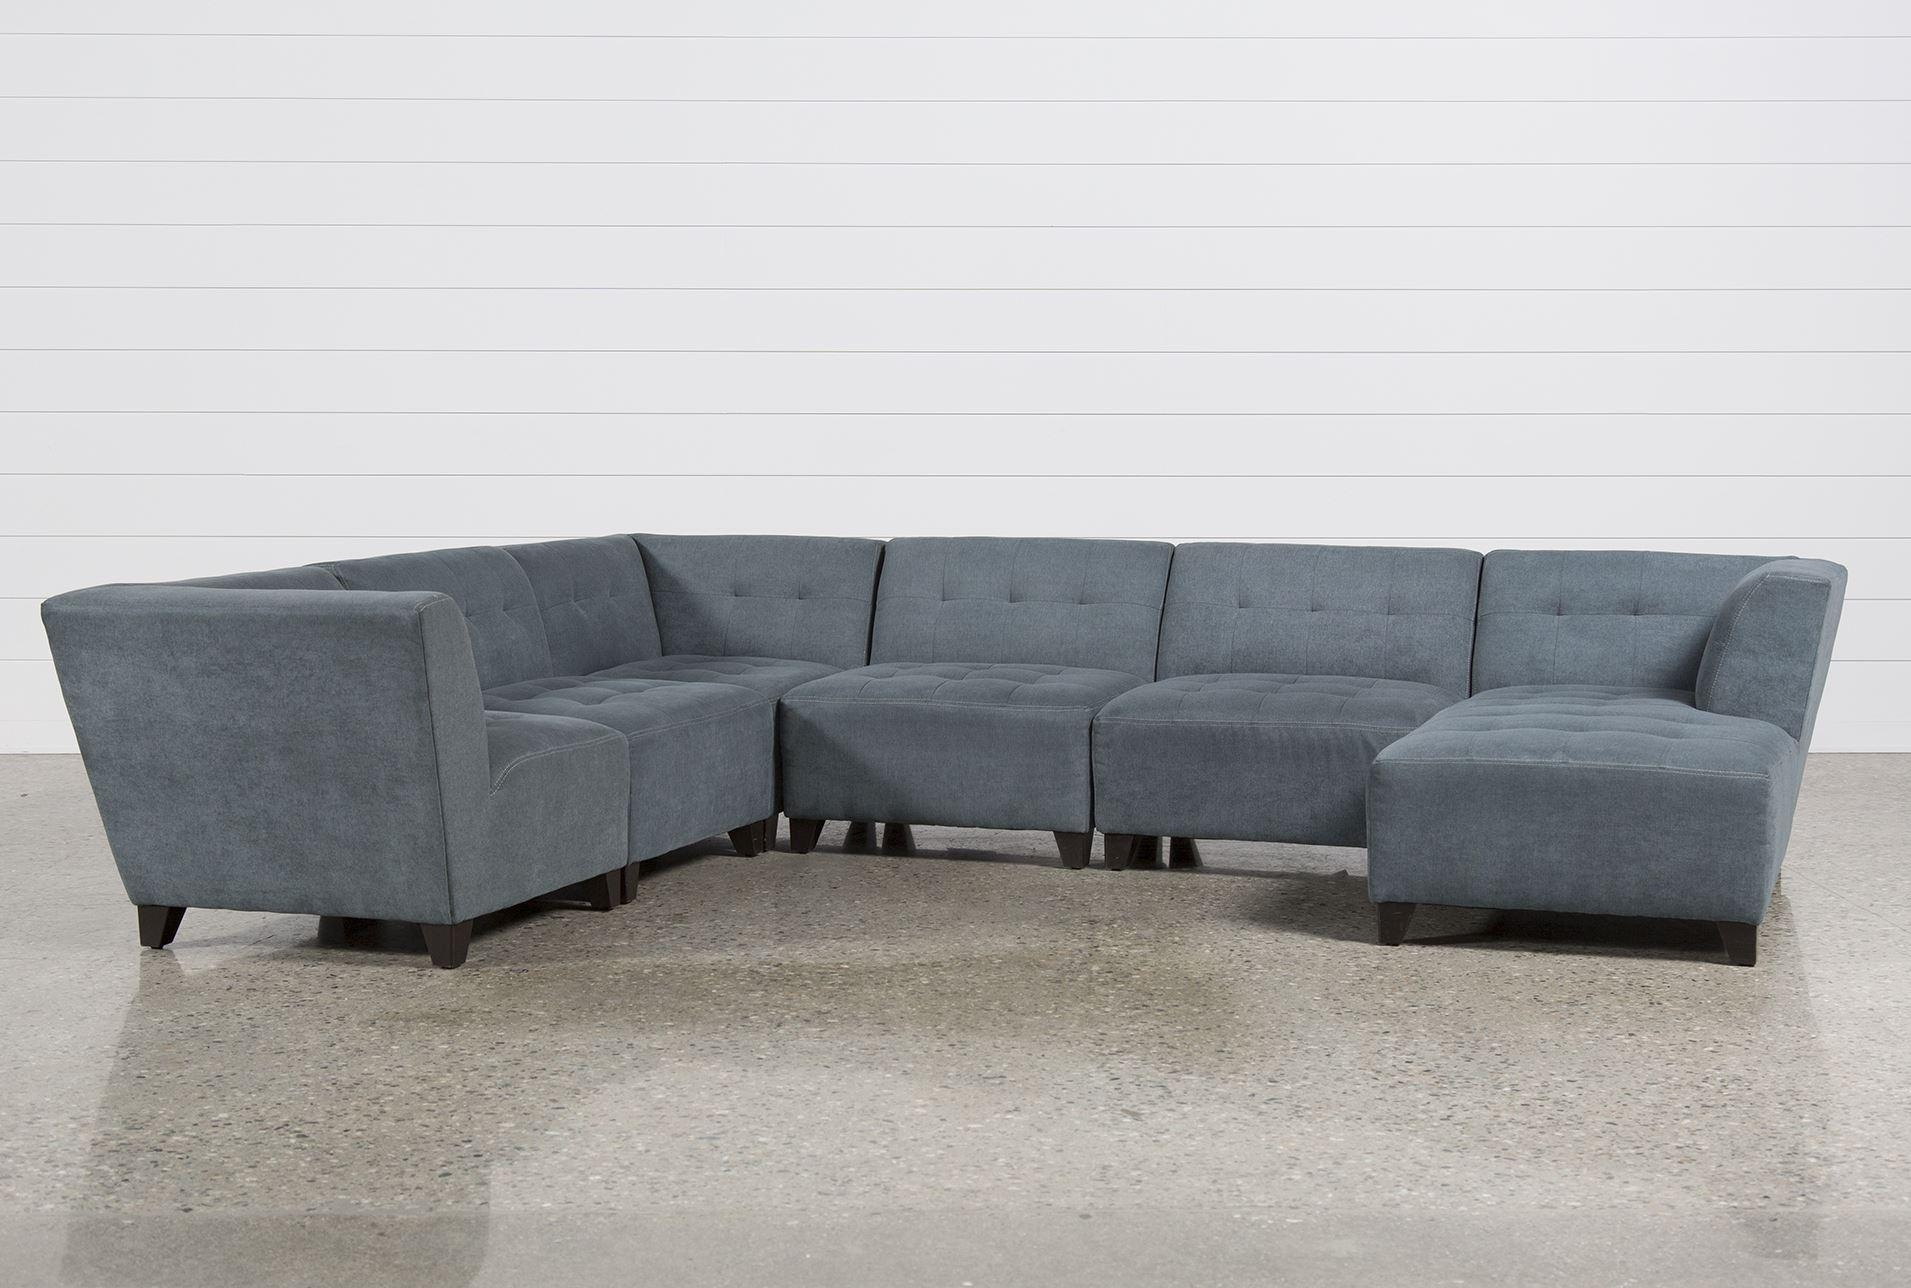 Amazing 6 Piece Sectional Sofa 17 For Sofas And Couches Set With 6 With Regard To 6 Piece Sectional Sofas Couches (Image 5 of 20)